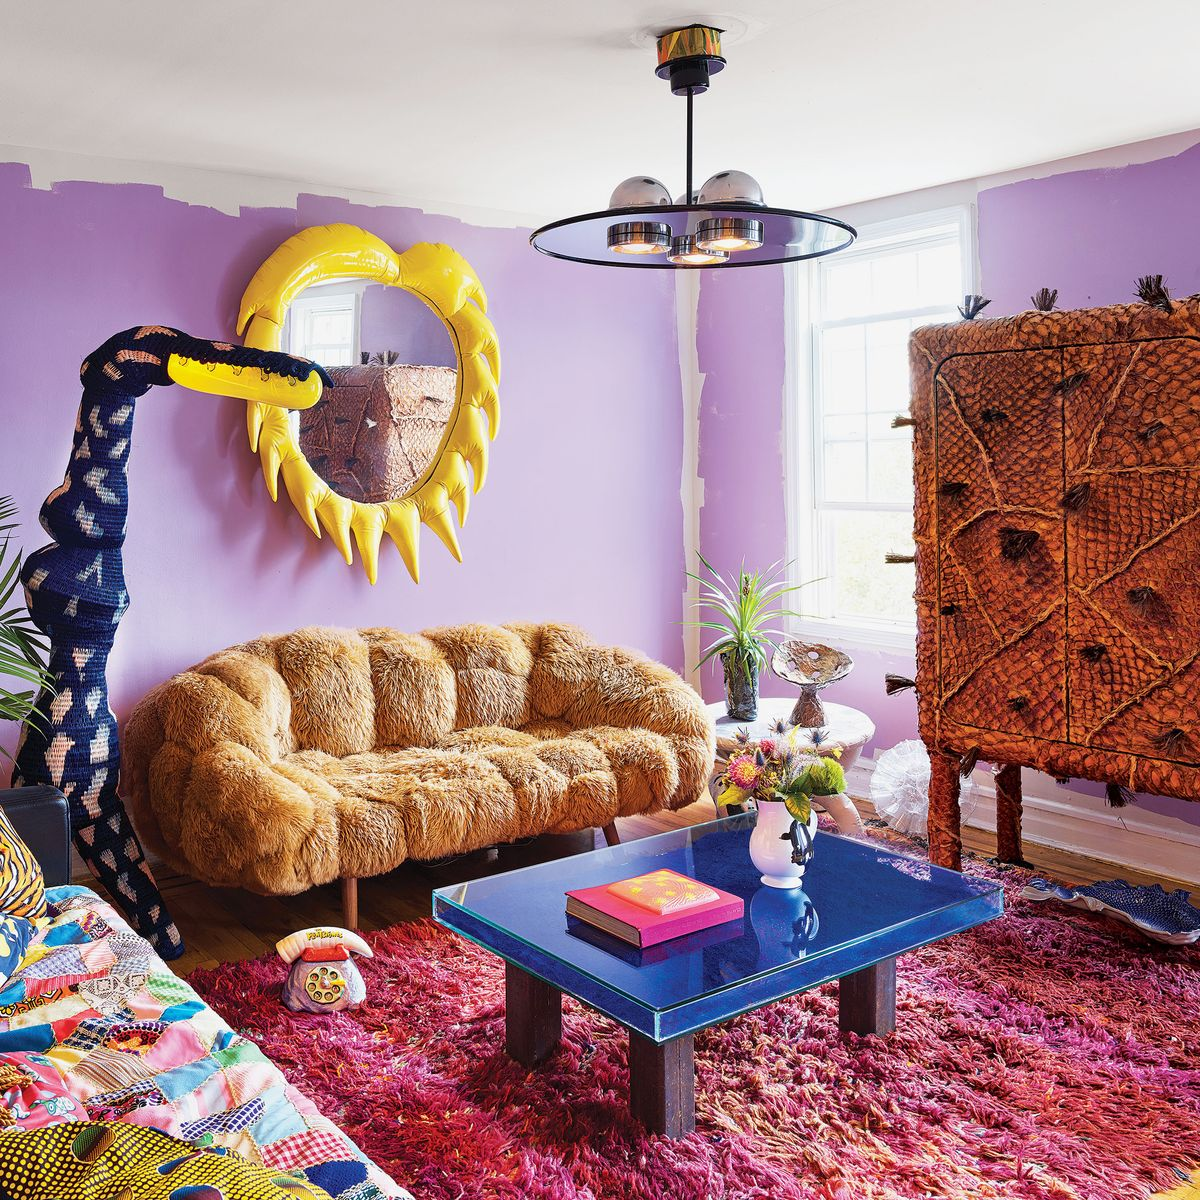 22 Products For A Maximalist Home Design 2018 The Strategist New York Magazine